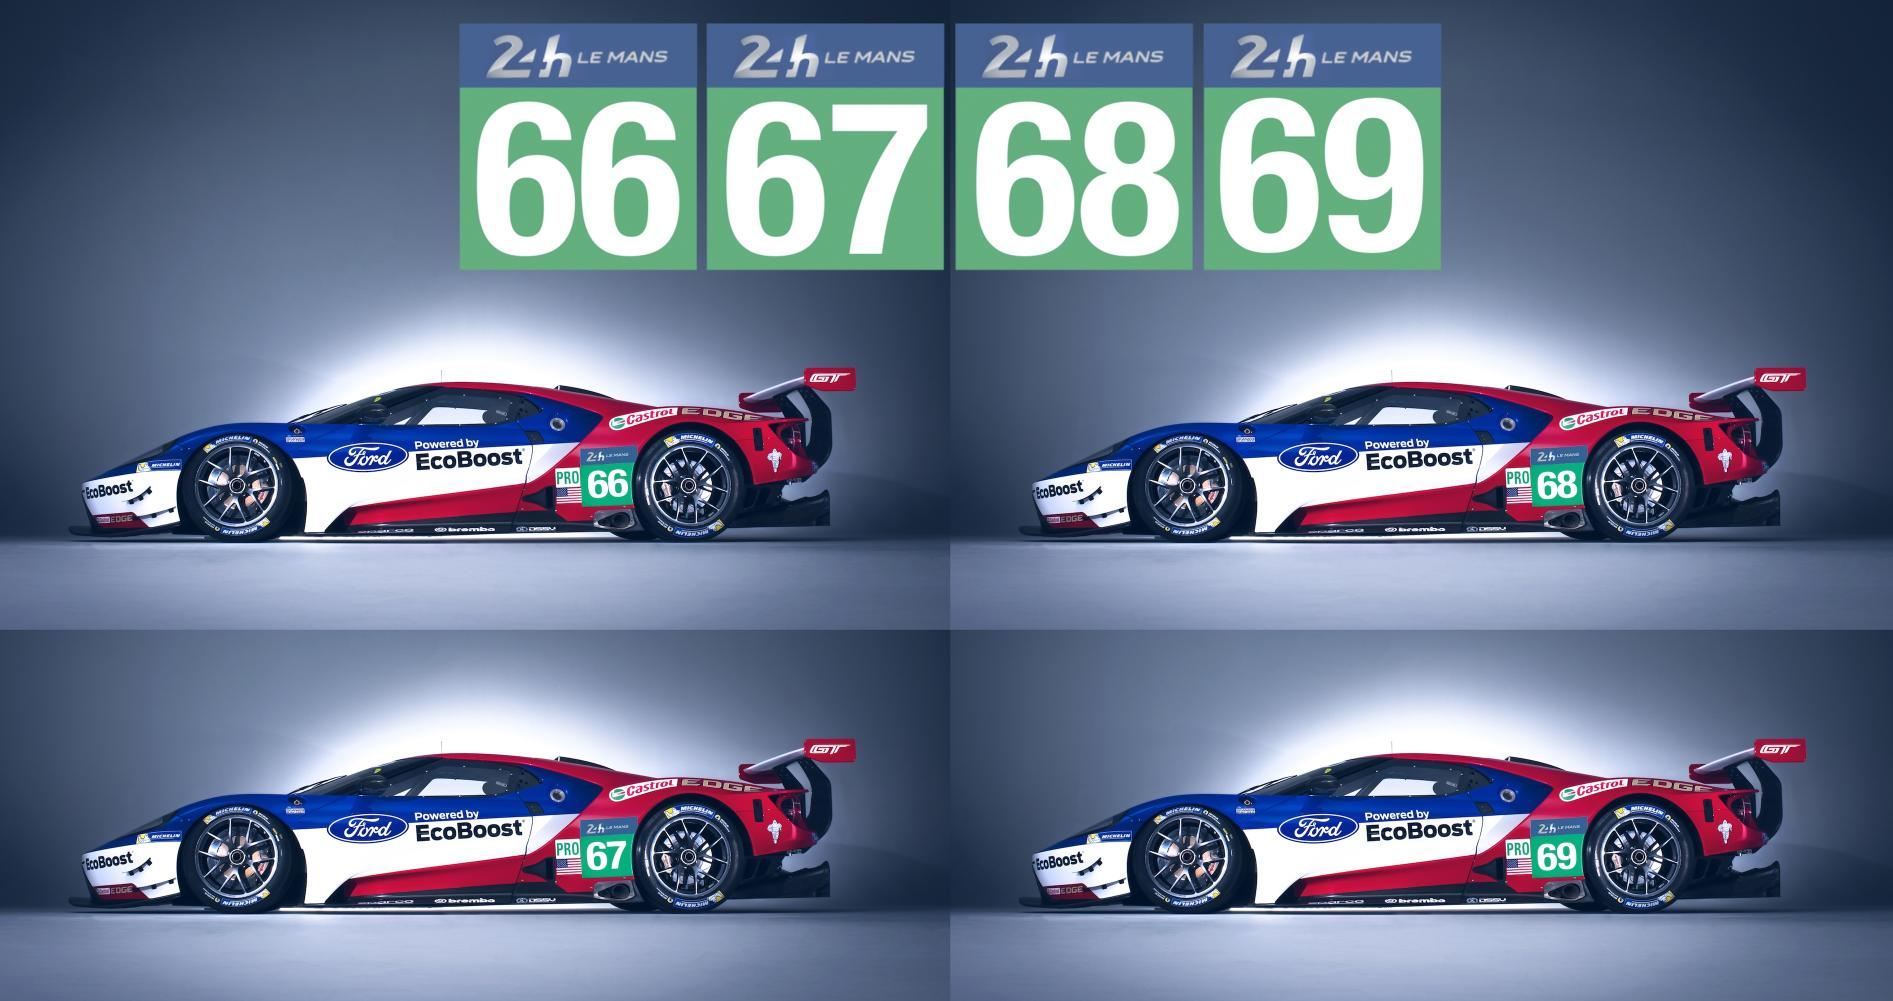 1135430_Ford-GT-racecar-numbers_image